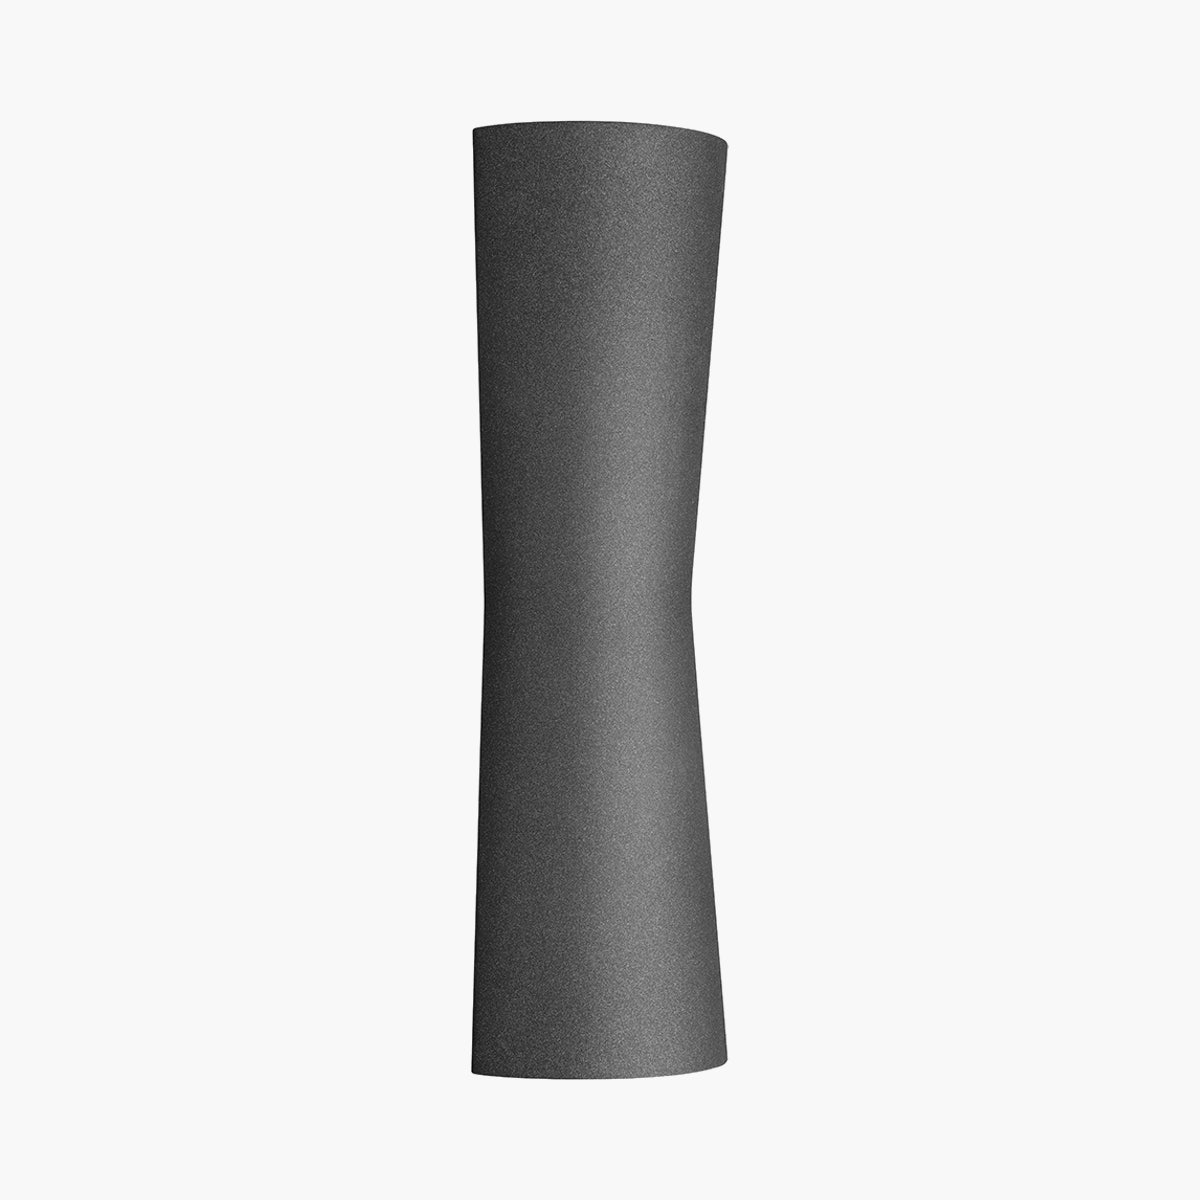 Clessidra Outdoor Wall Sconce